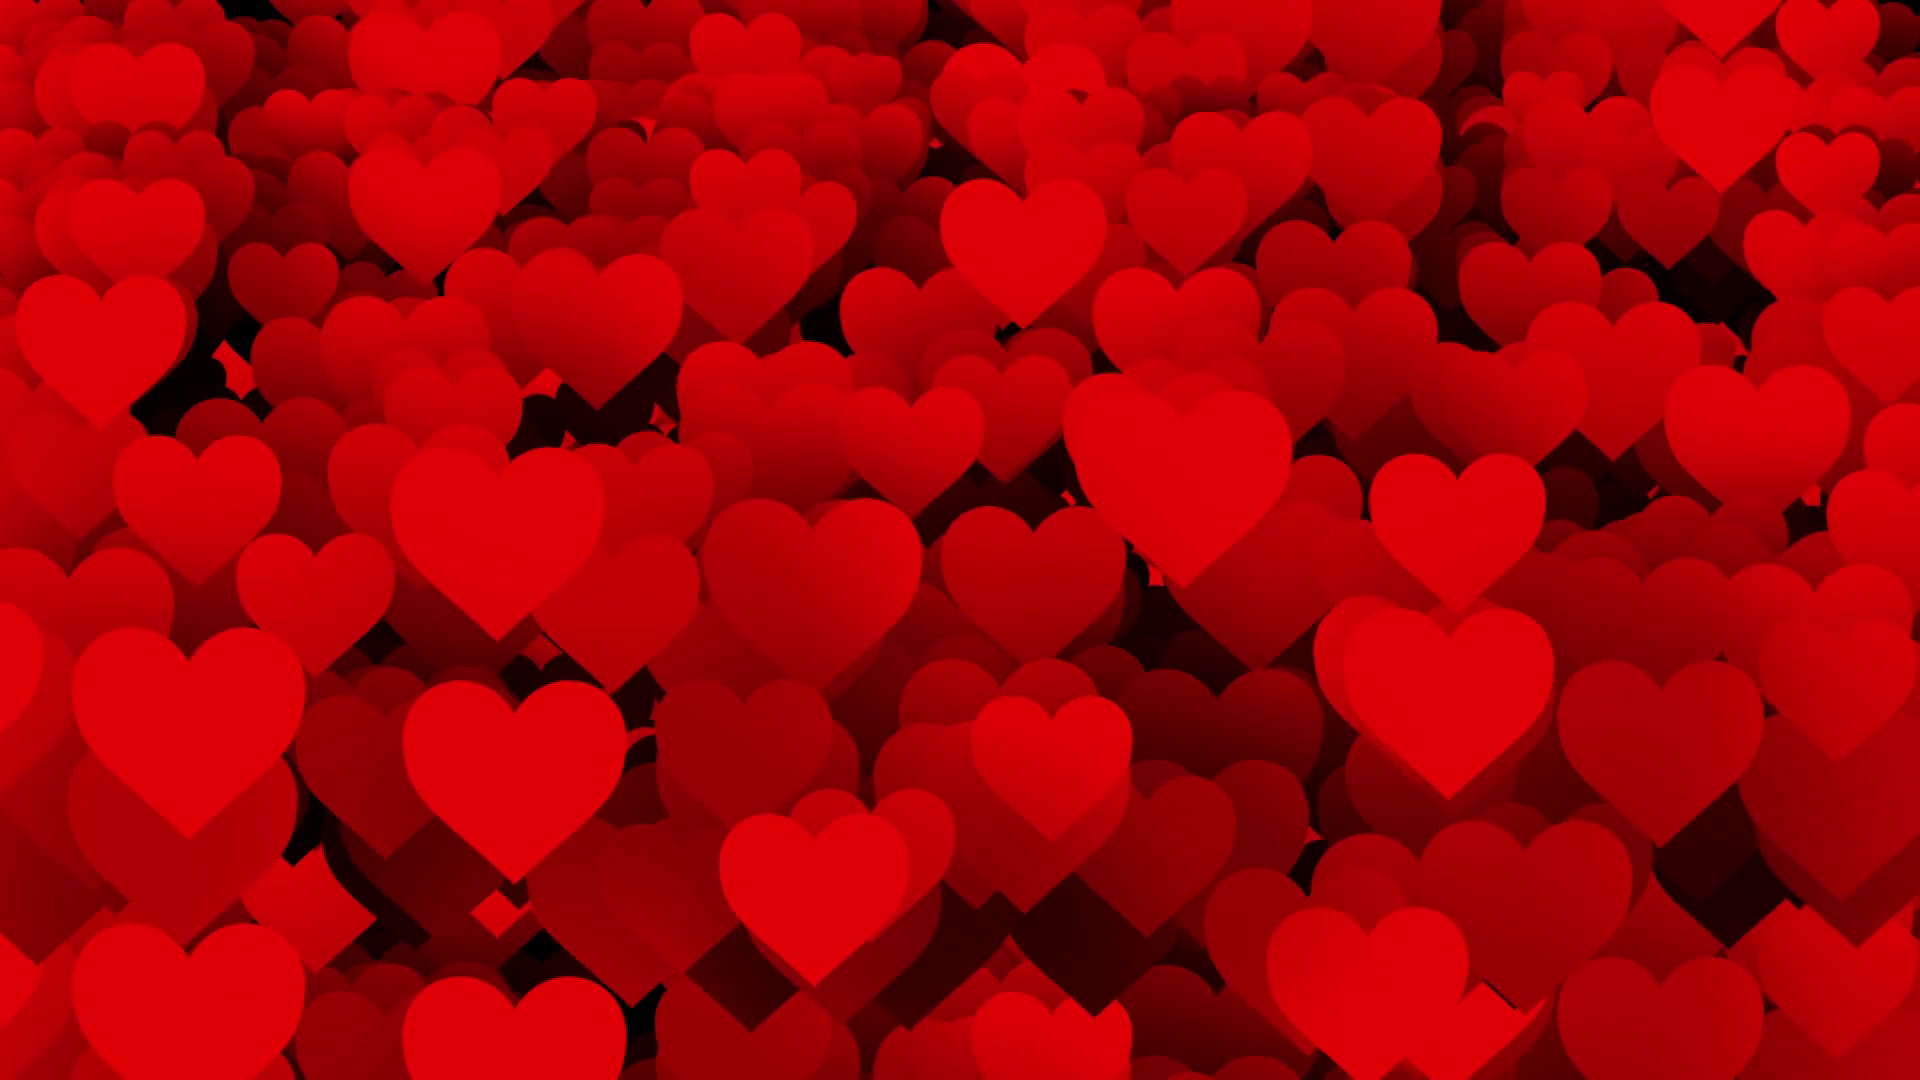 red_hearts_background